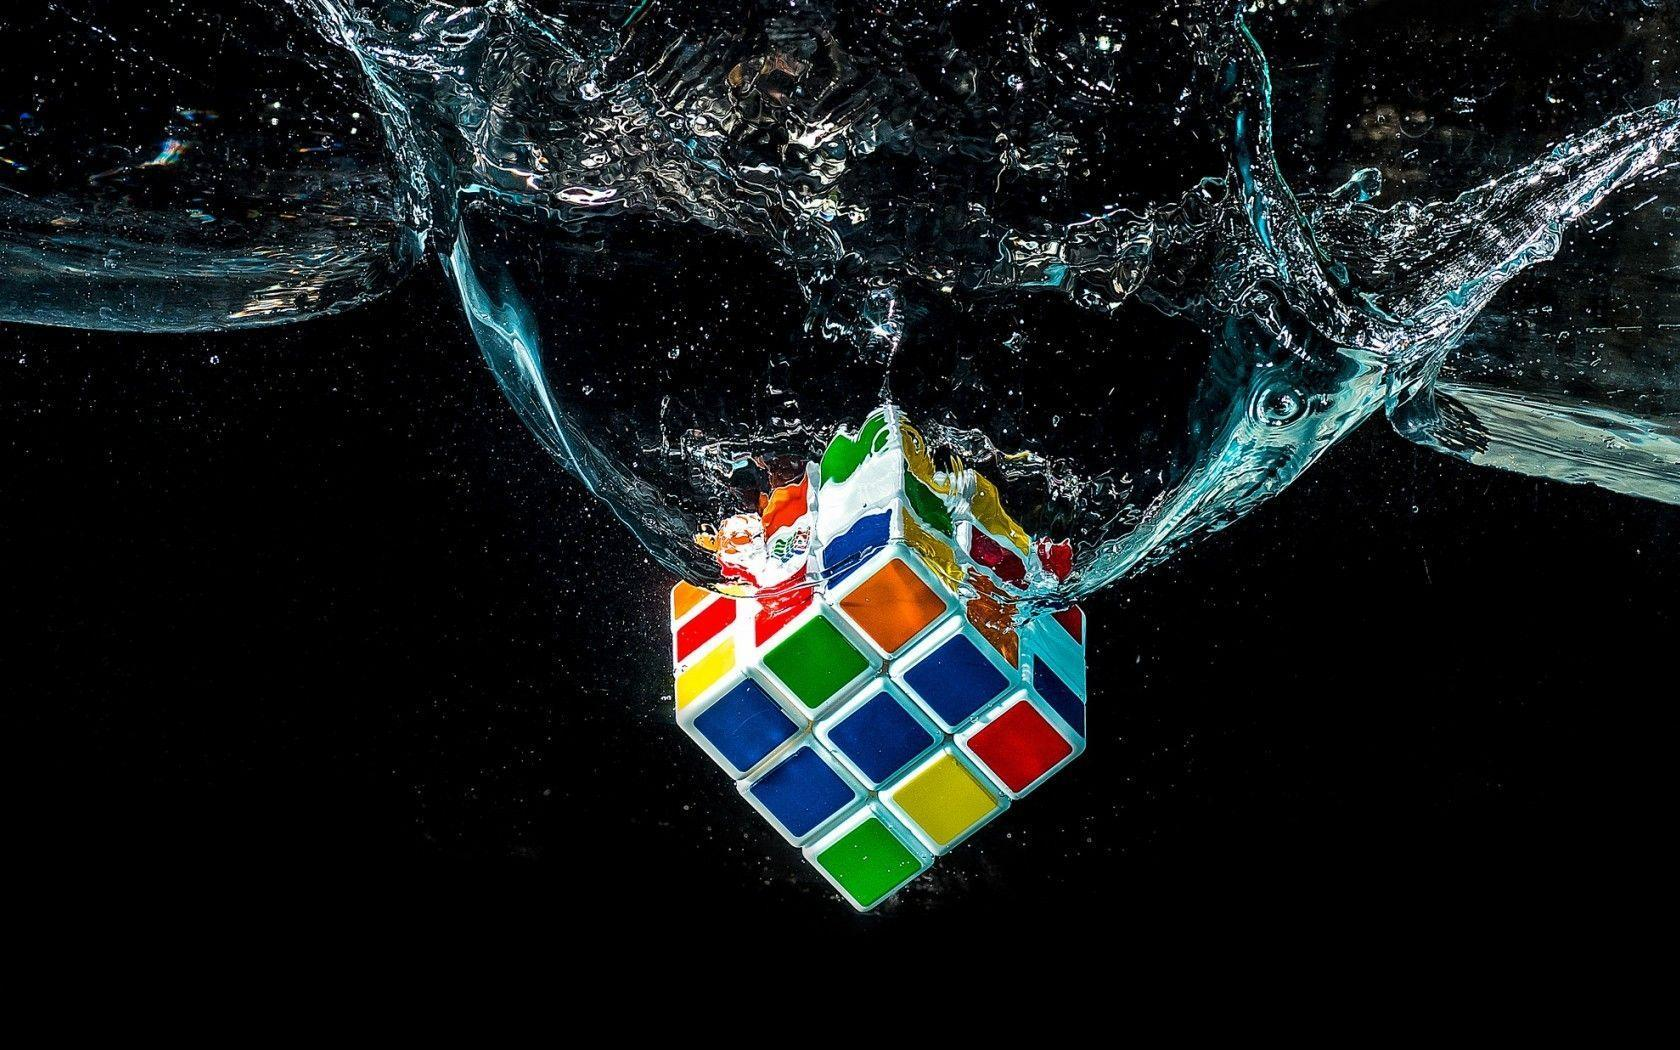 Download 8000+ Wallpaper Hd Android Cubo Rubik  Terbaik